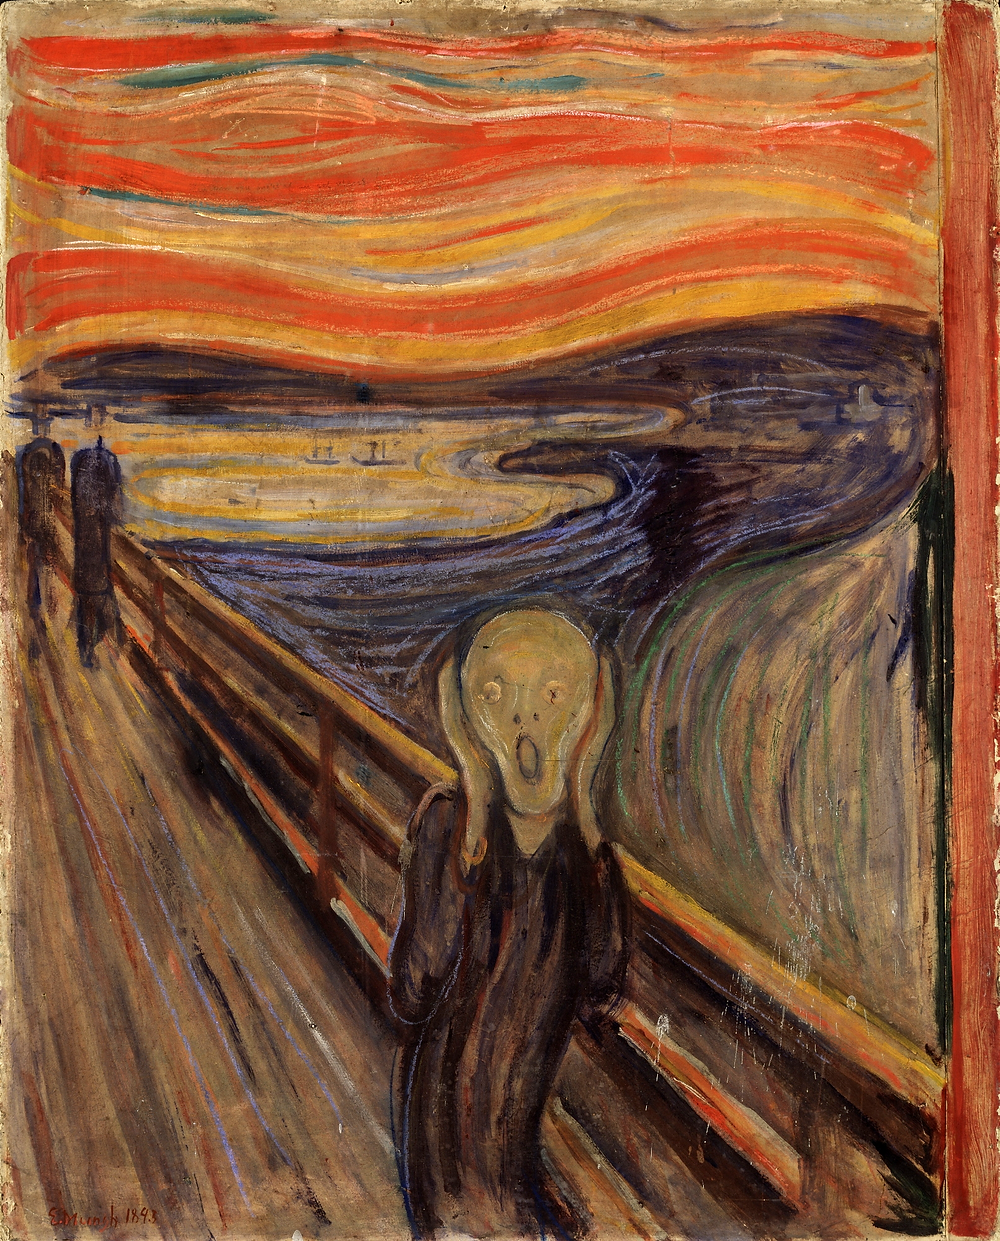 """The sun began to set – suddenly the sky turned blood red. I stood there trembling with anxiety -and I sensed an endless scream passing through nature,"" Norwegian painter and printmaker Edvard Munch wrote about his famous 1893 masterpiece The Scream. Munch was also quoted on another occasion saying, ""My fear of life is necessary to me, as is my illness. They are indistinguishable from me, and their destruction would destroy my art."""